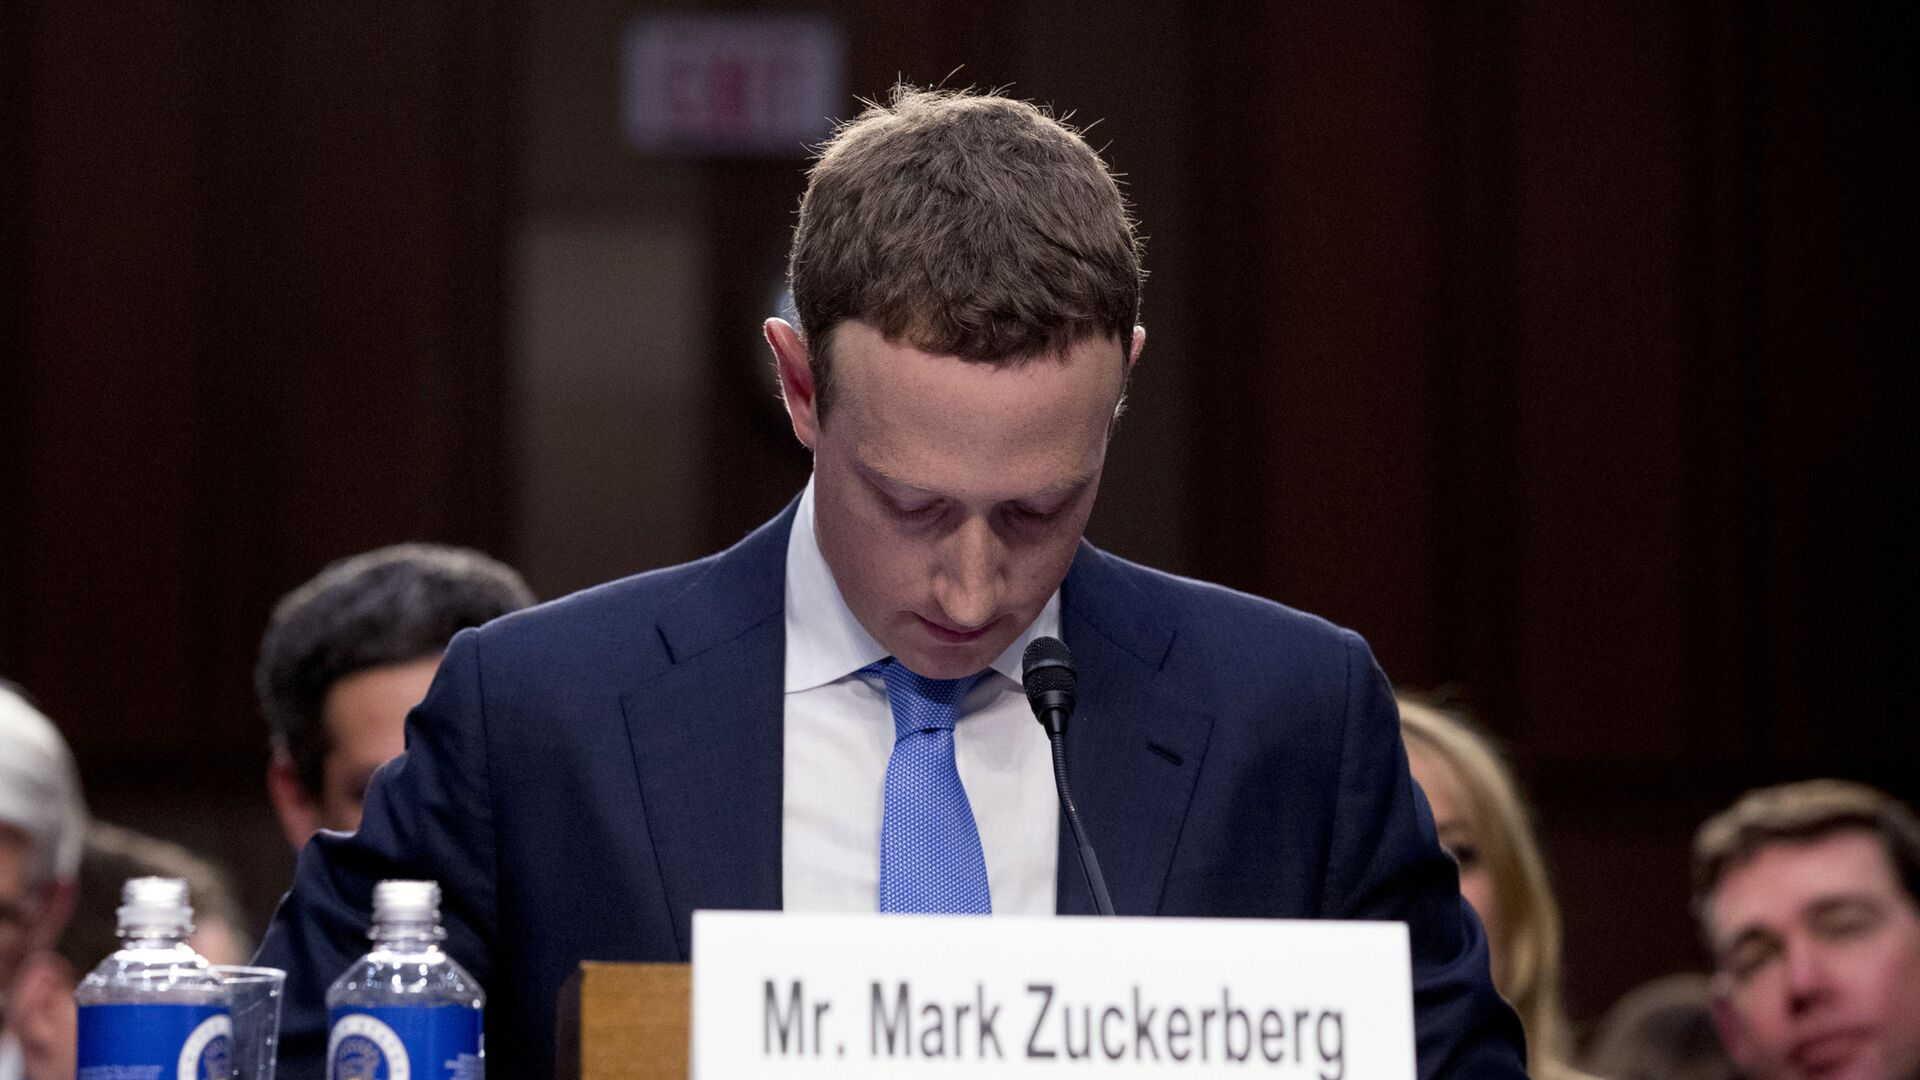 In this April 10, 2018, file photo Facebook CEO Mark Zuckerberg looks down as a break is called during his testimony before a joint hearing of the Commerce and Judiciary Committees on Capitol Hill in Washington. - Sputnik International, 1920, 18.09.2021